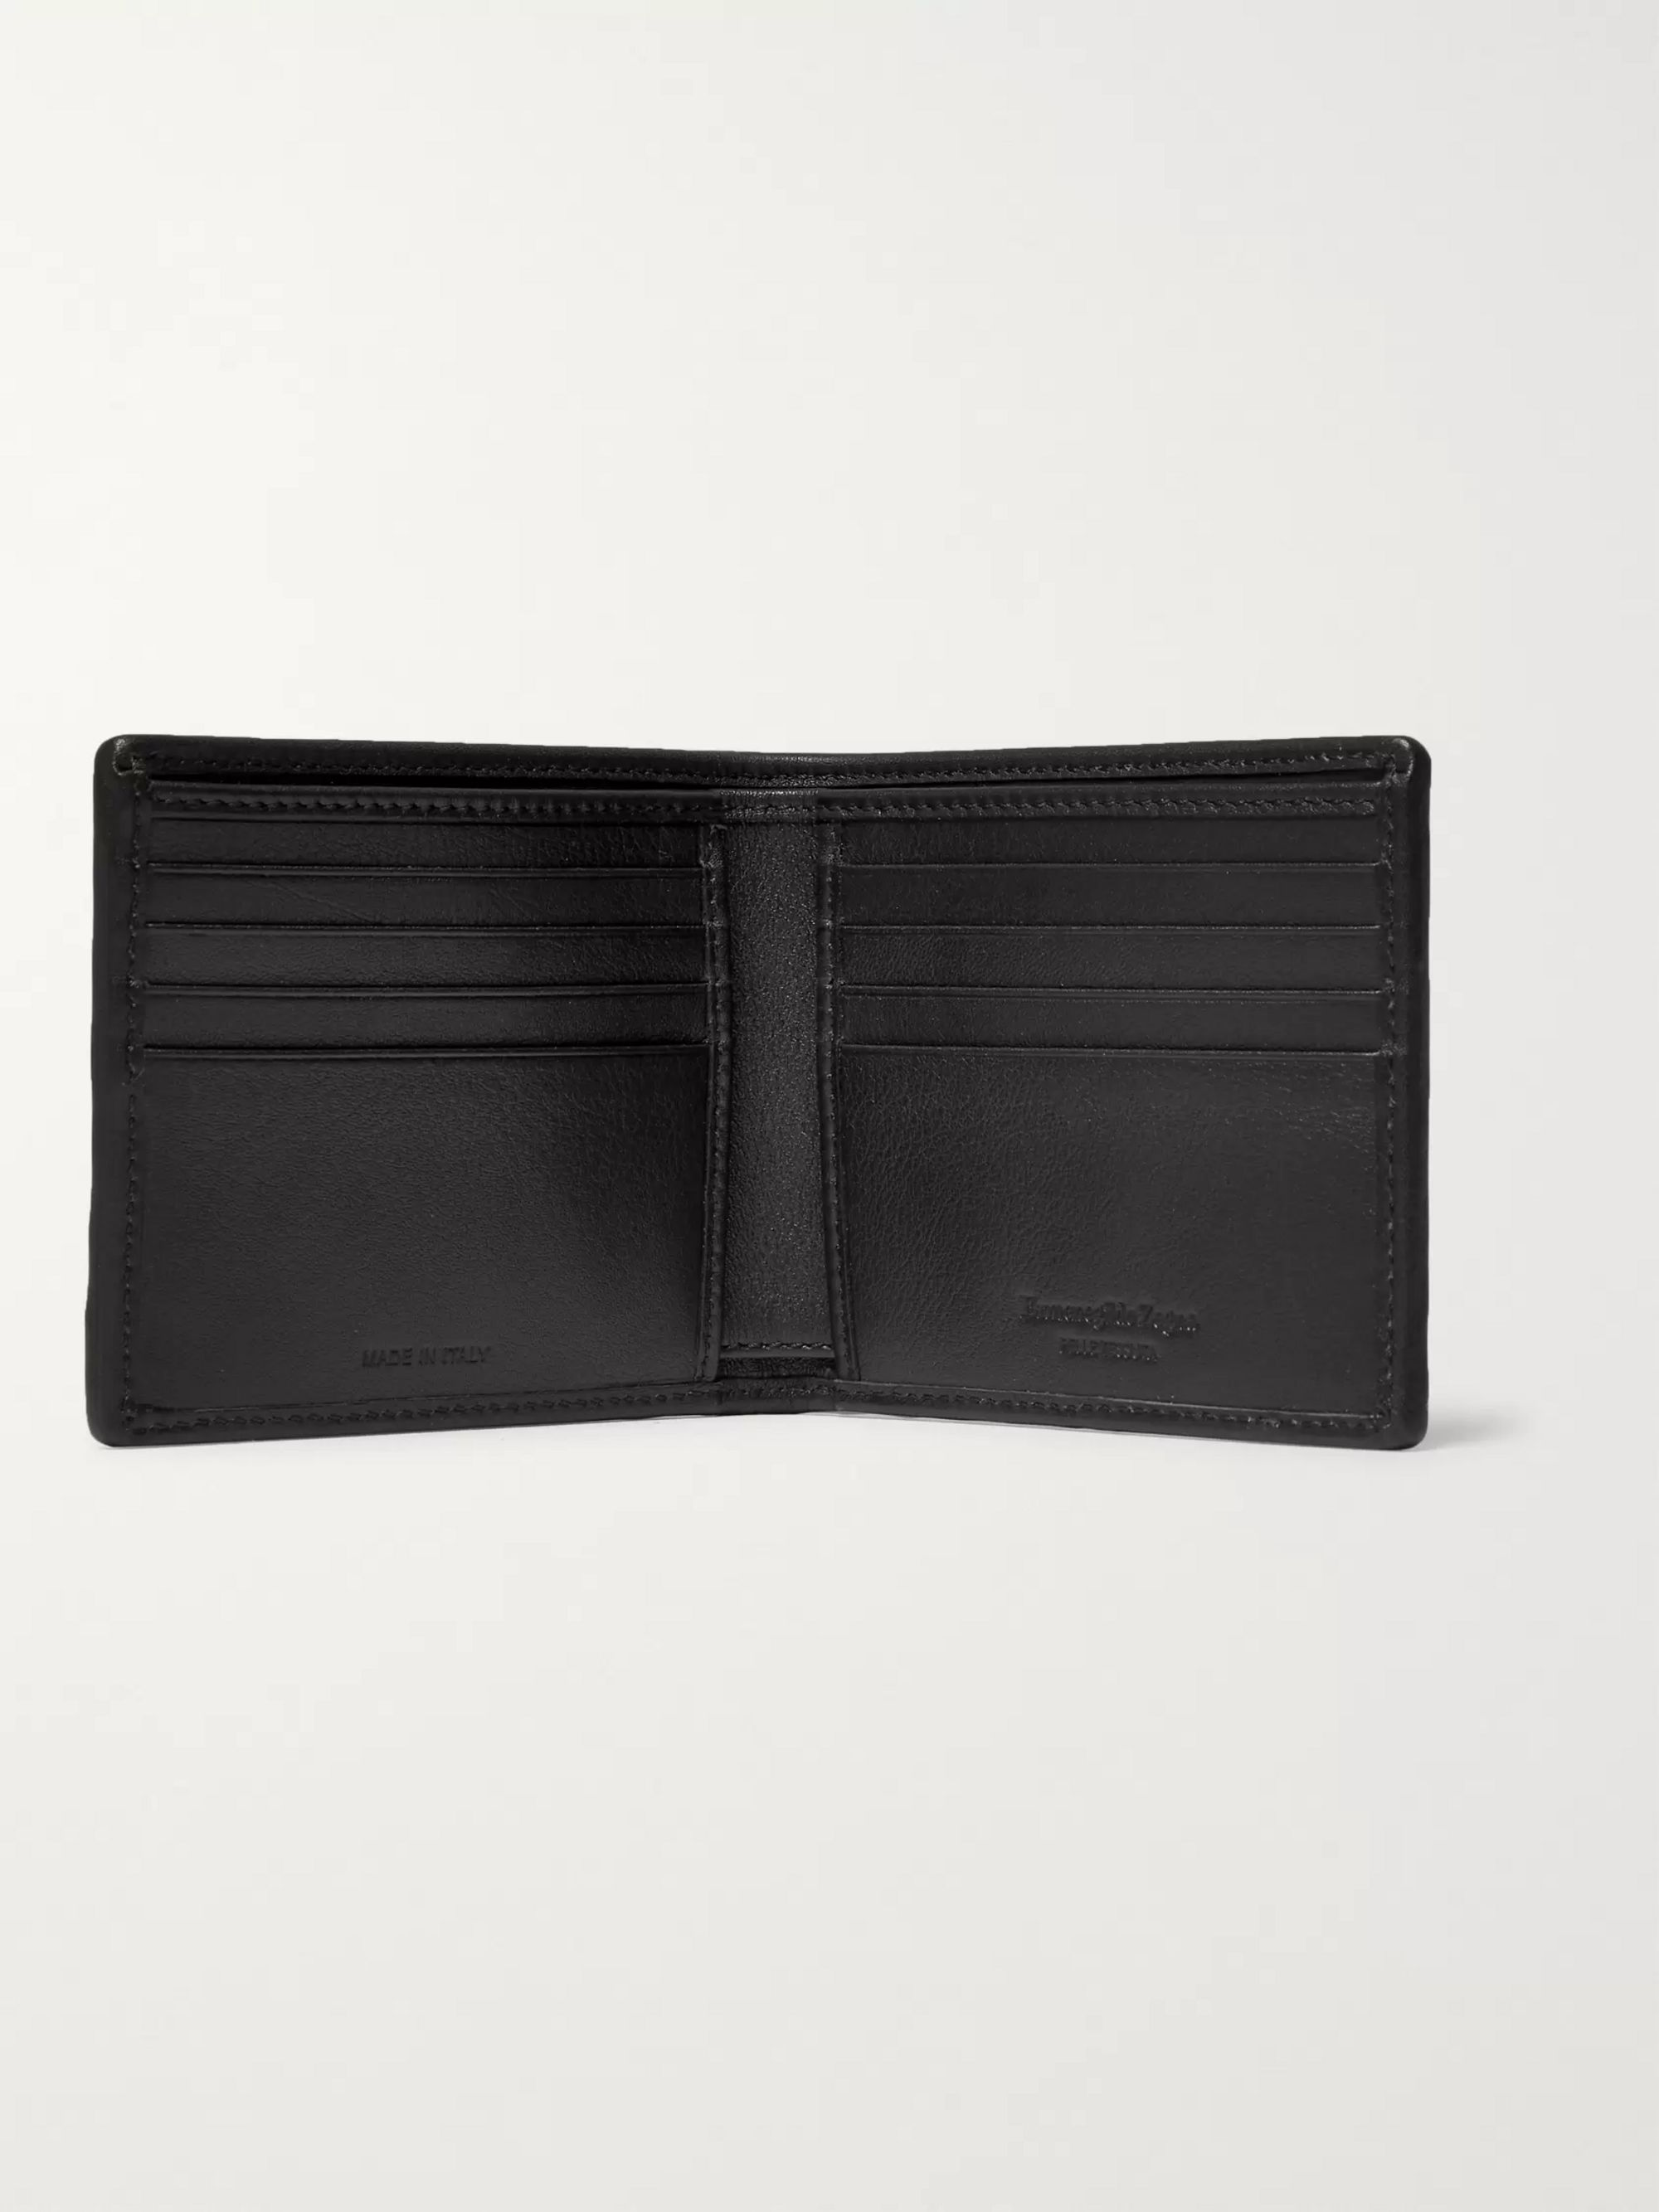 Ermenegildo Zegna PelleTessuta Leather Billfold Wallet